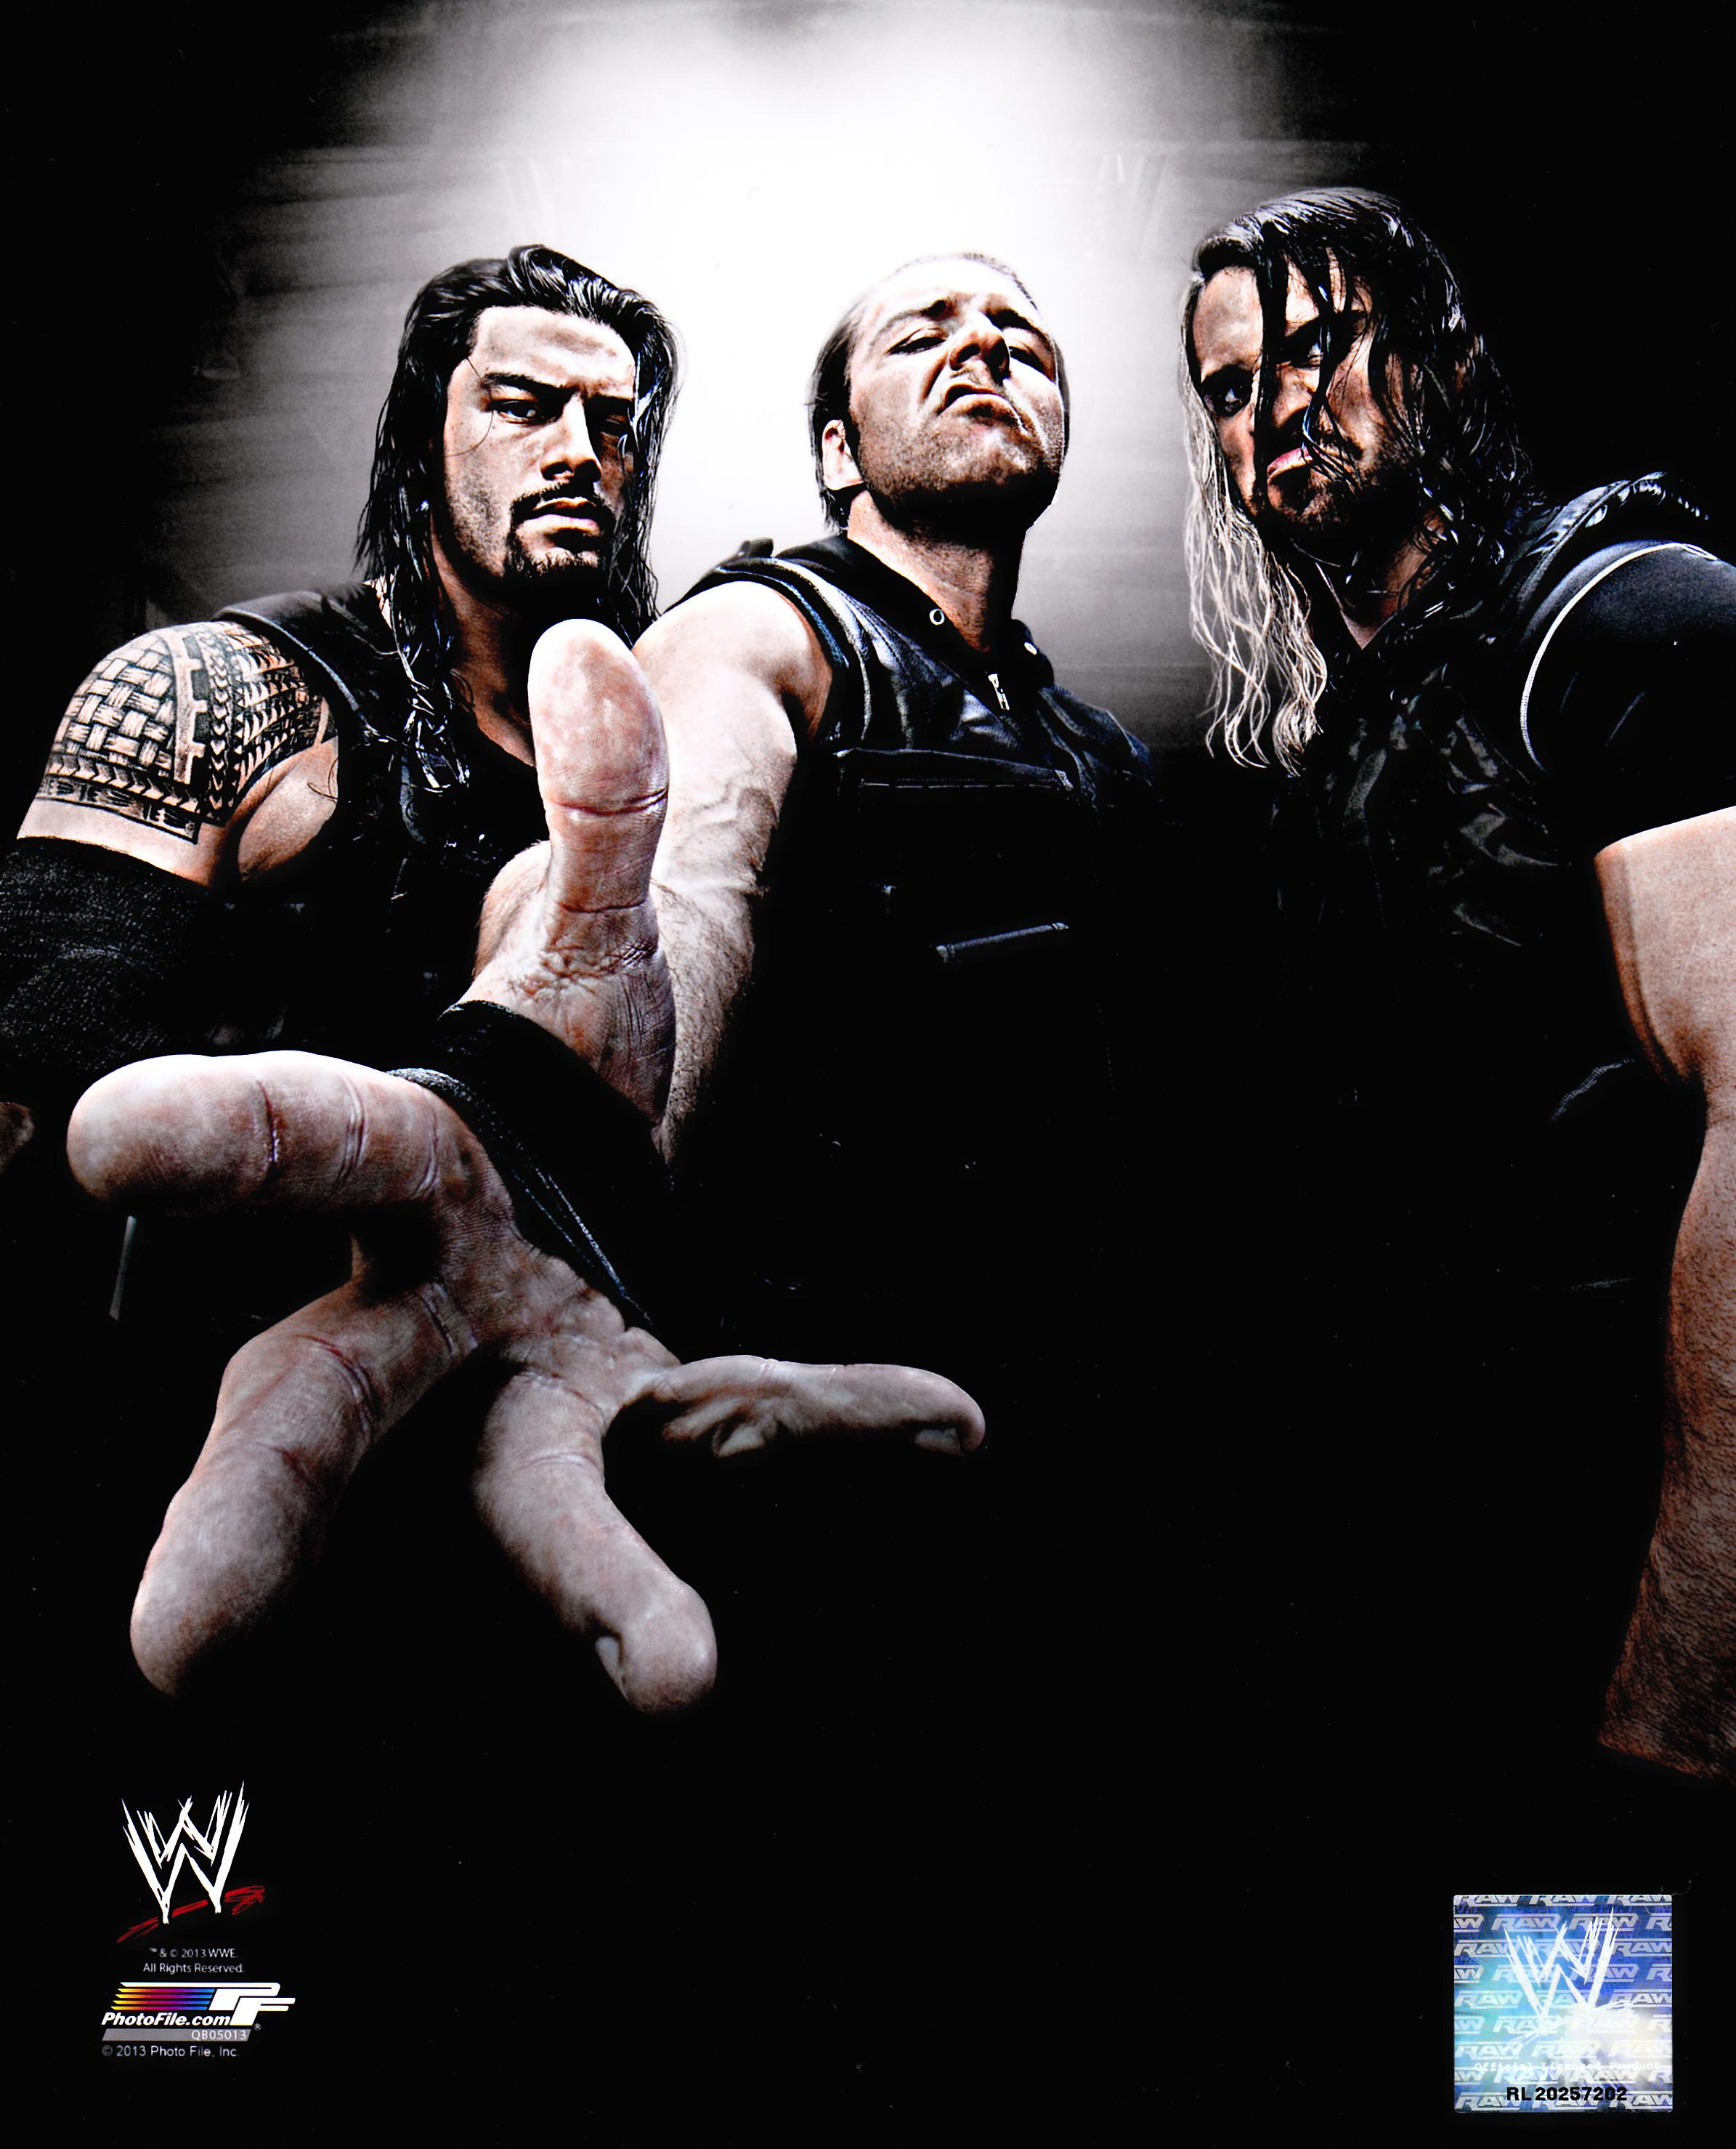 Wwe Iphone Wallpaper 2390x2958 Download Hd Wallpaper Wallpapertip